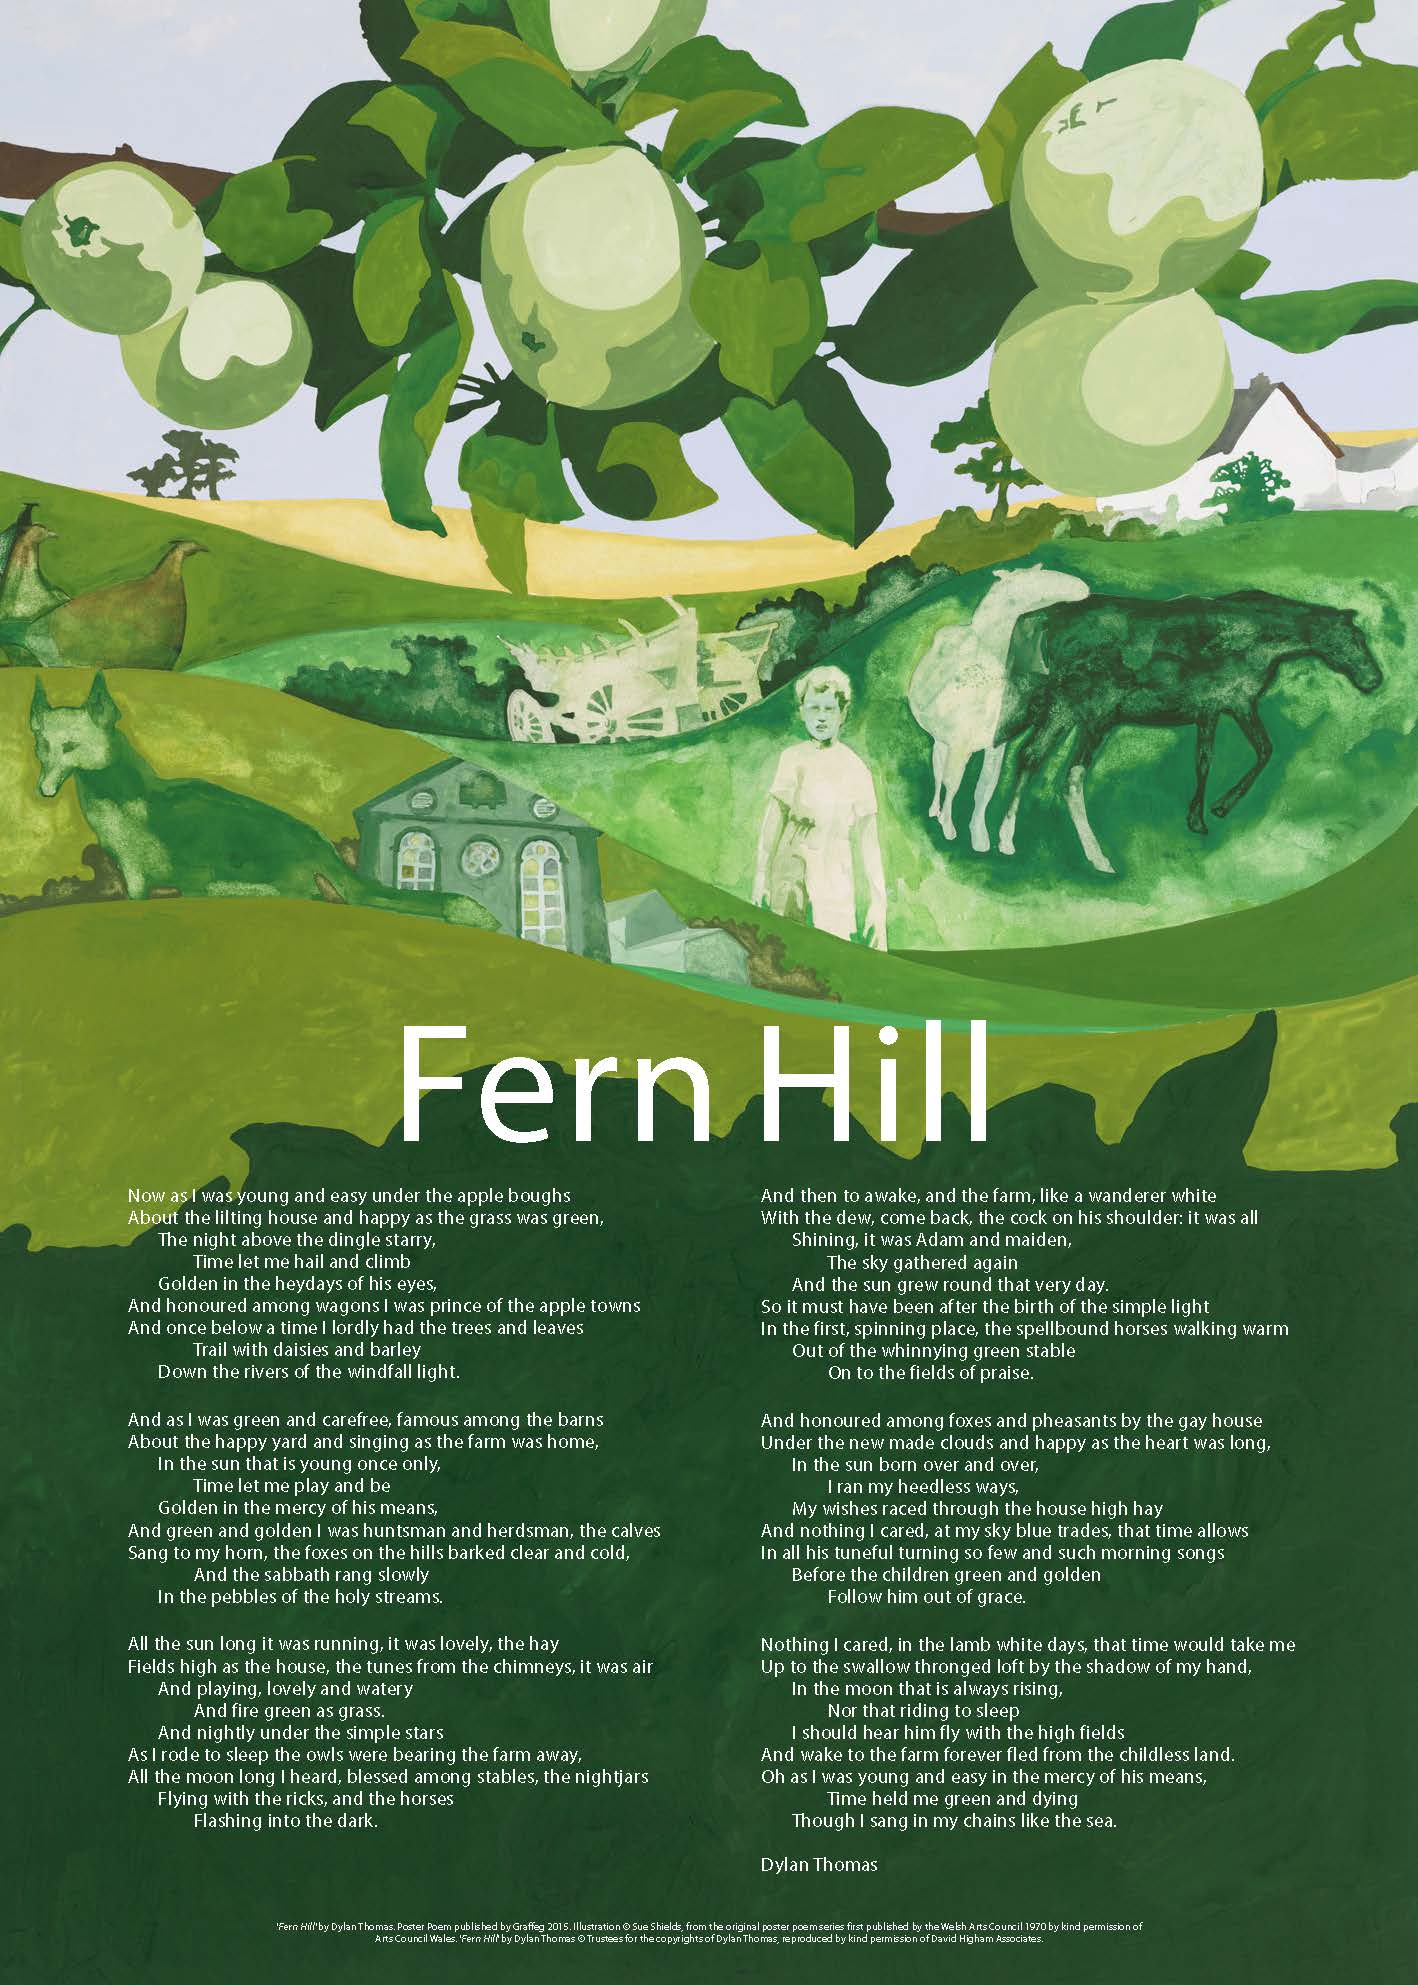 fern hill literary analysis Dive deep into dylan thomas' fern hill with extended analysis, commentary, and discussion.